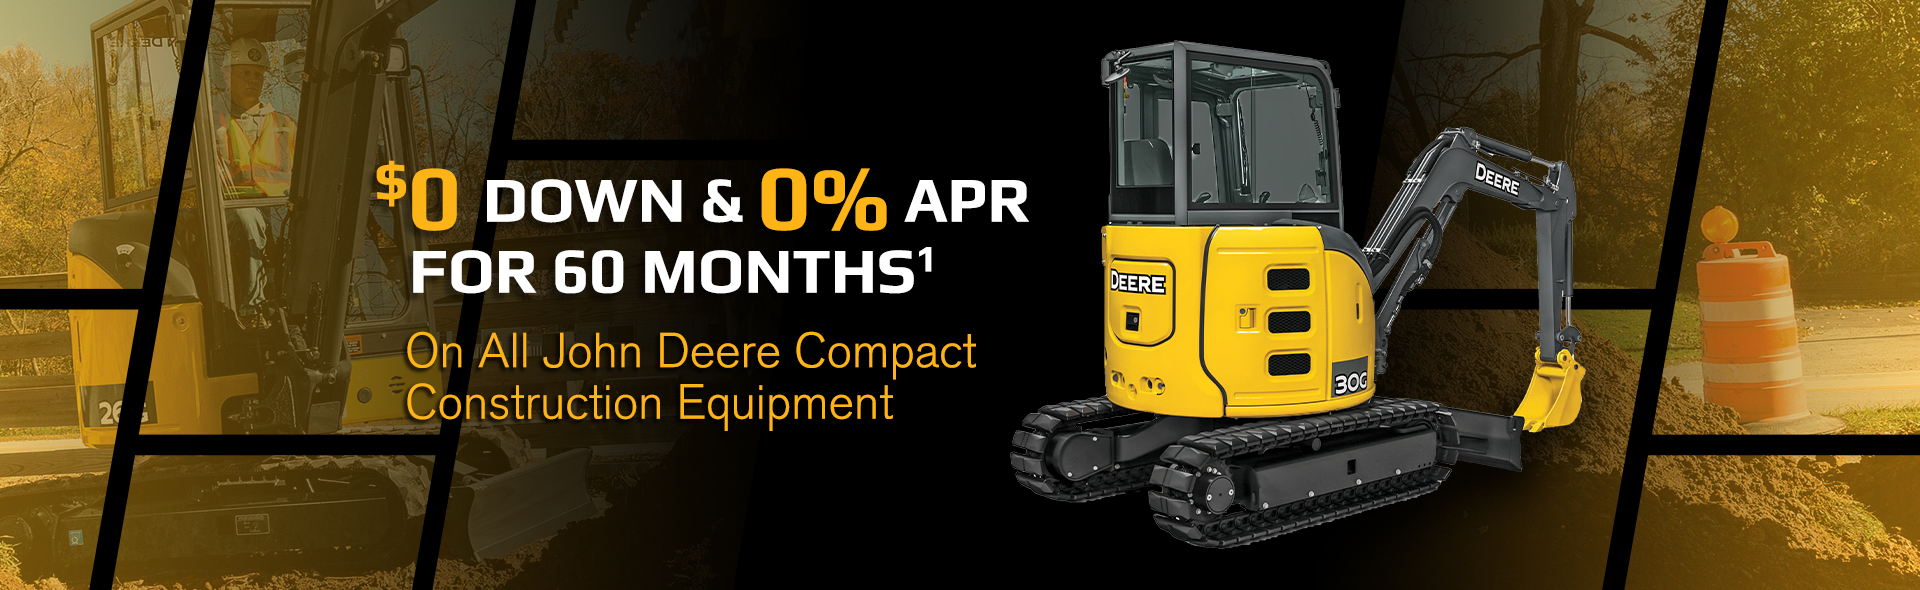 $0 Down & 0% APR for 60 Months1 On all John Deere Compact Construction Equipment - See disclaimer for details